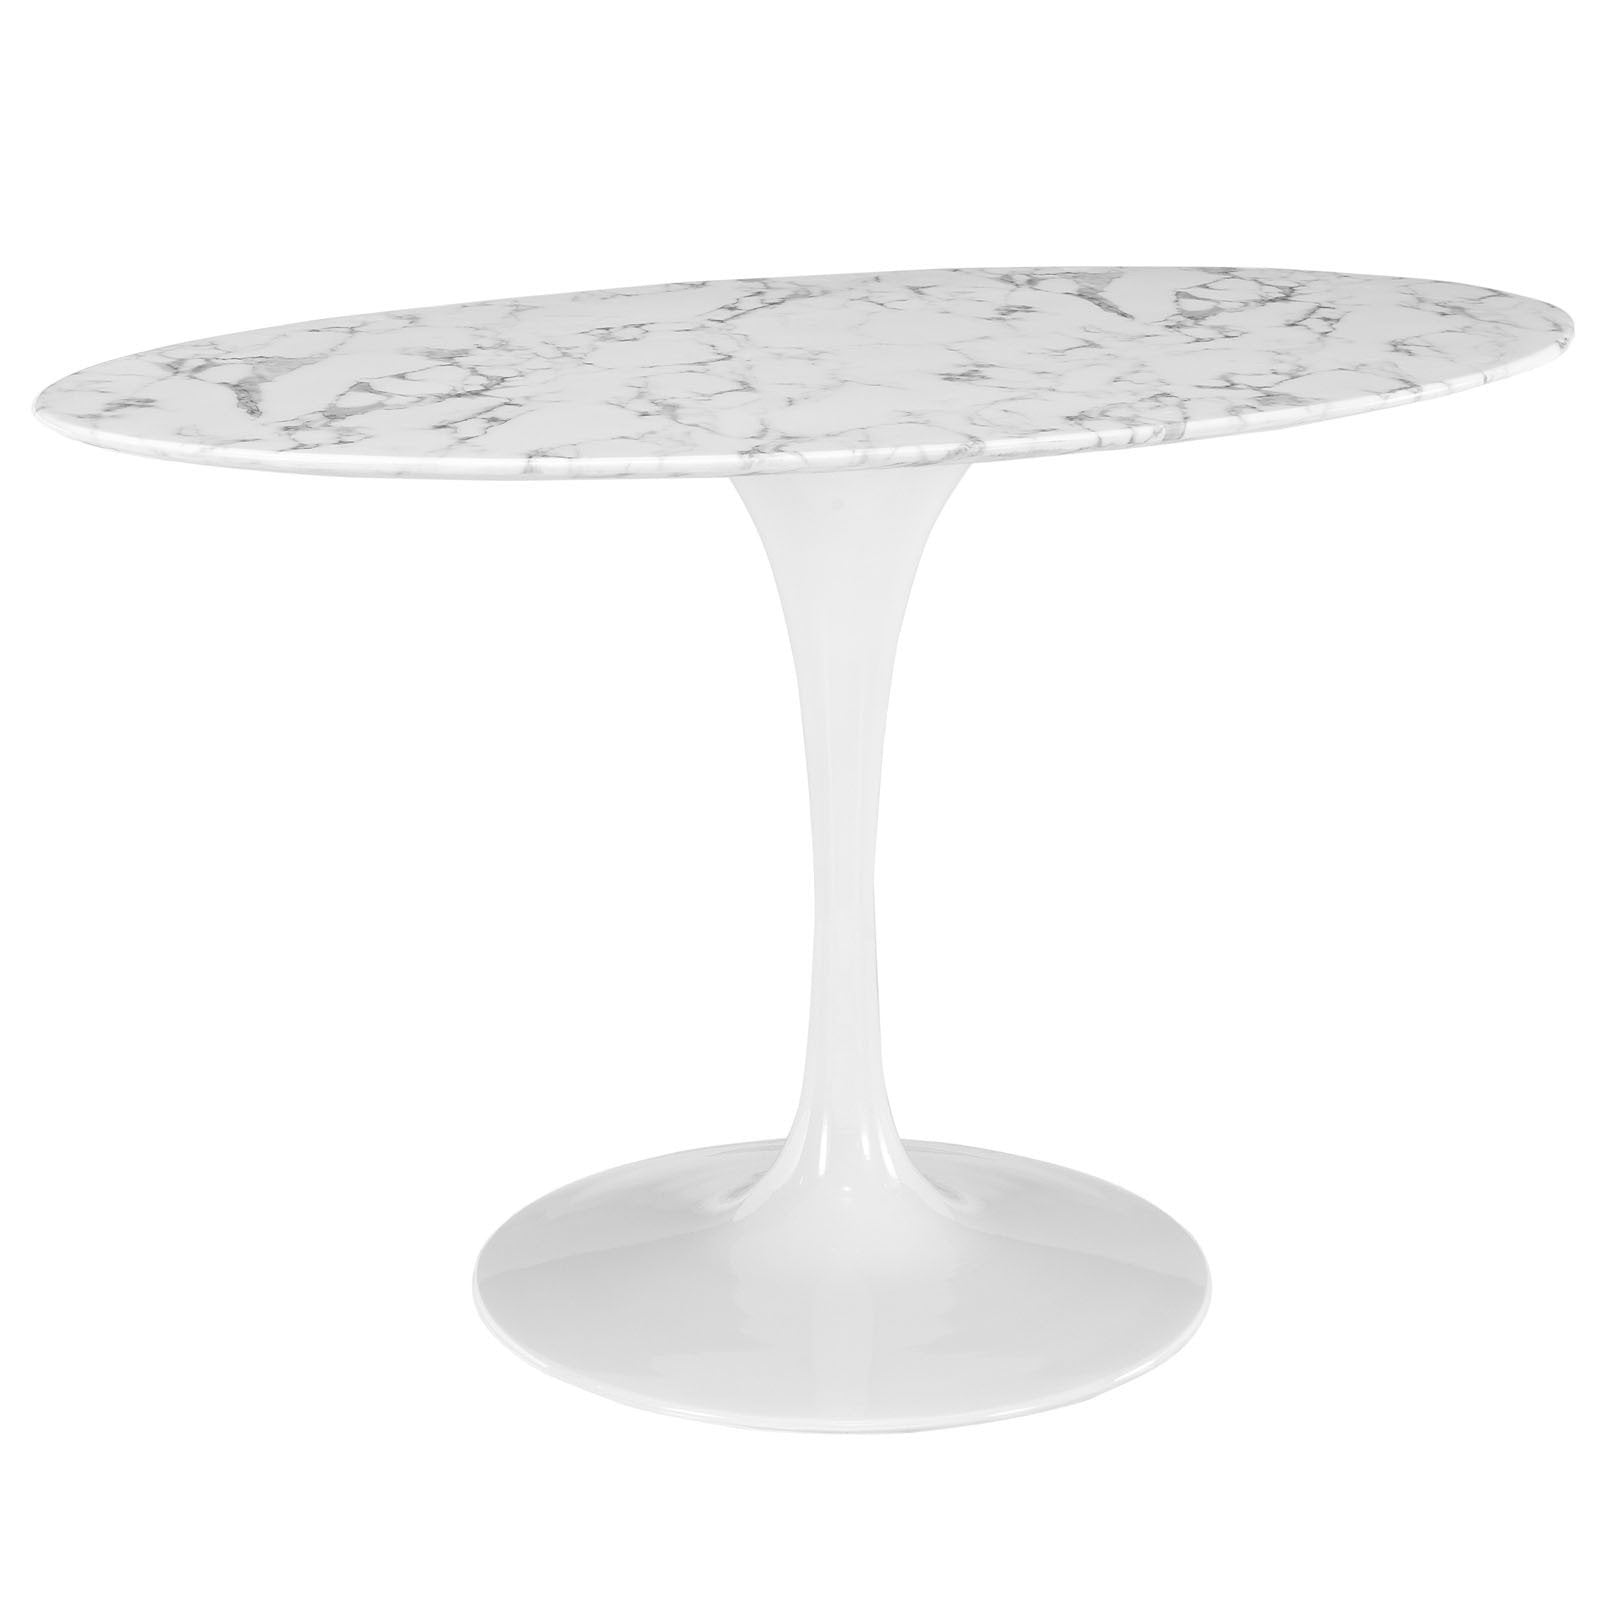 Tulip Style 54 Oval Marble Dining Table EMFURN